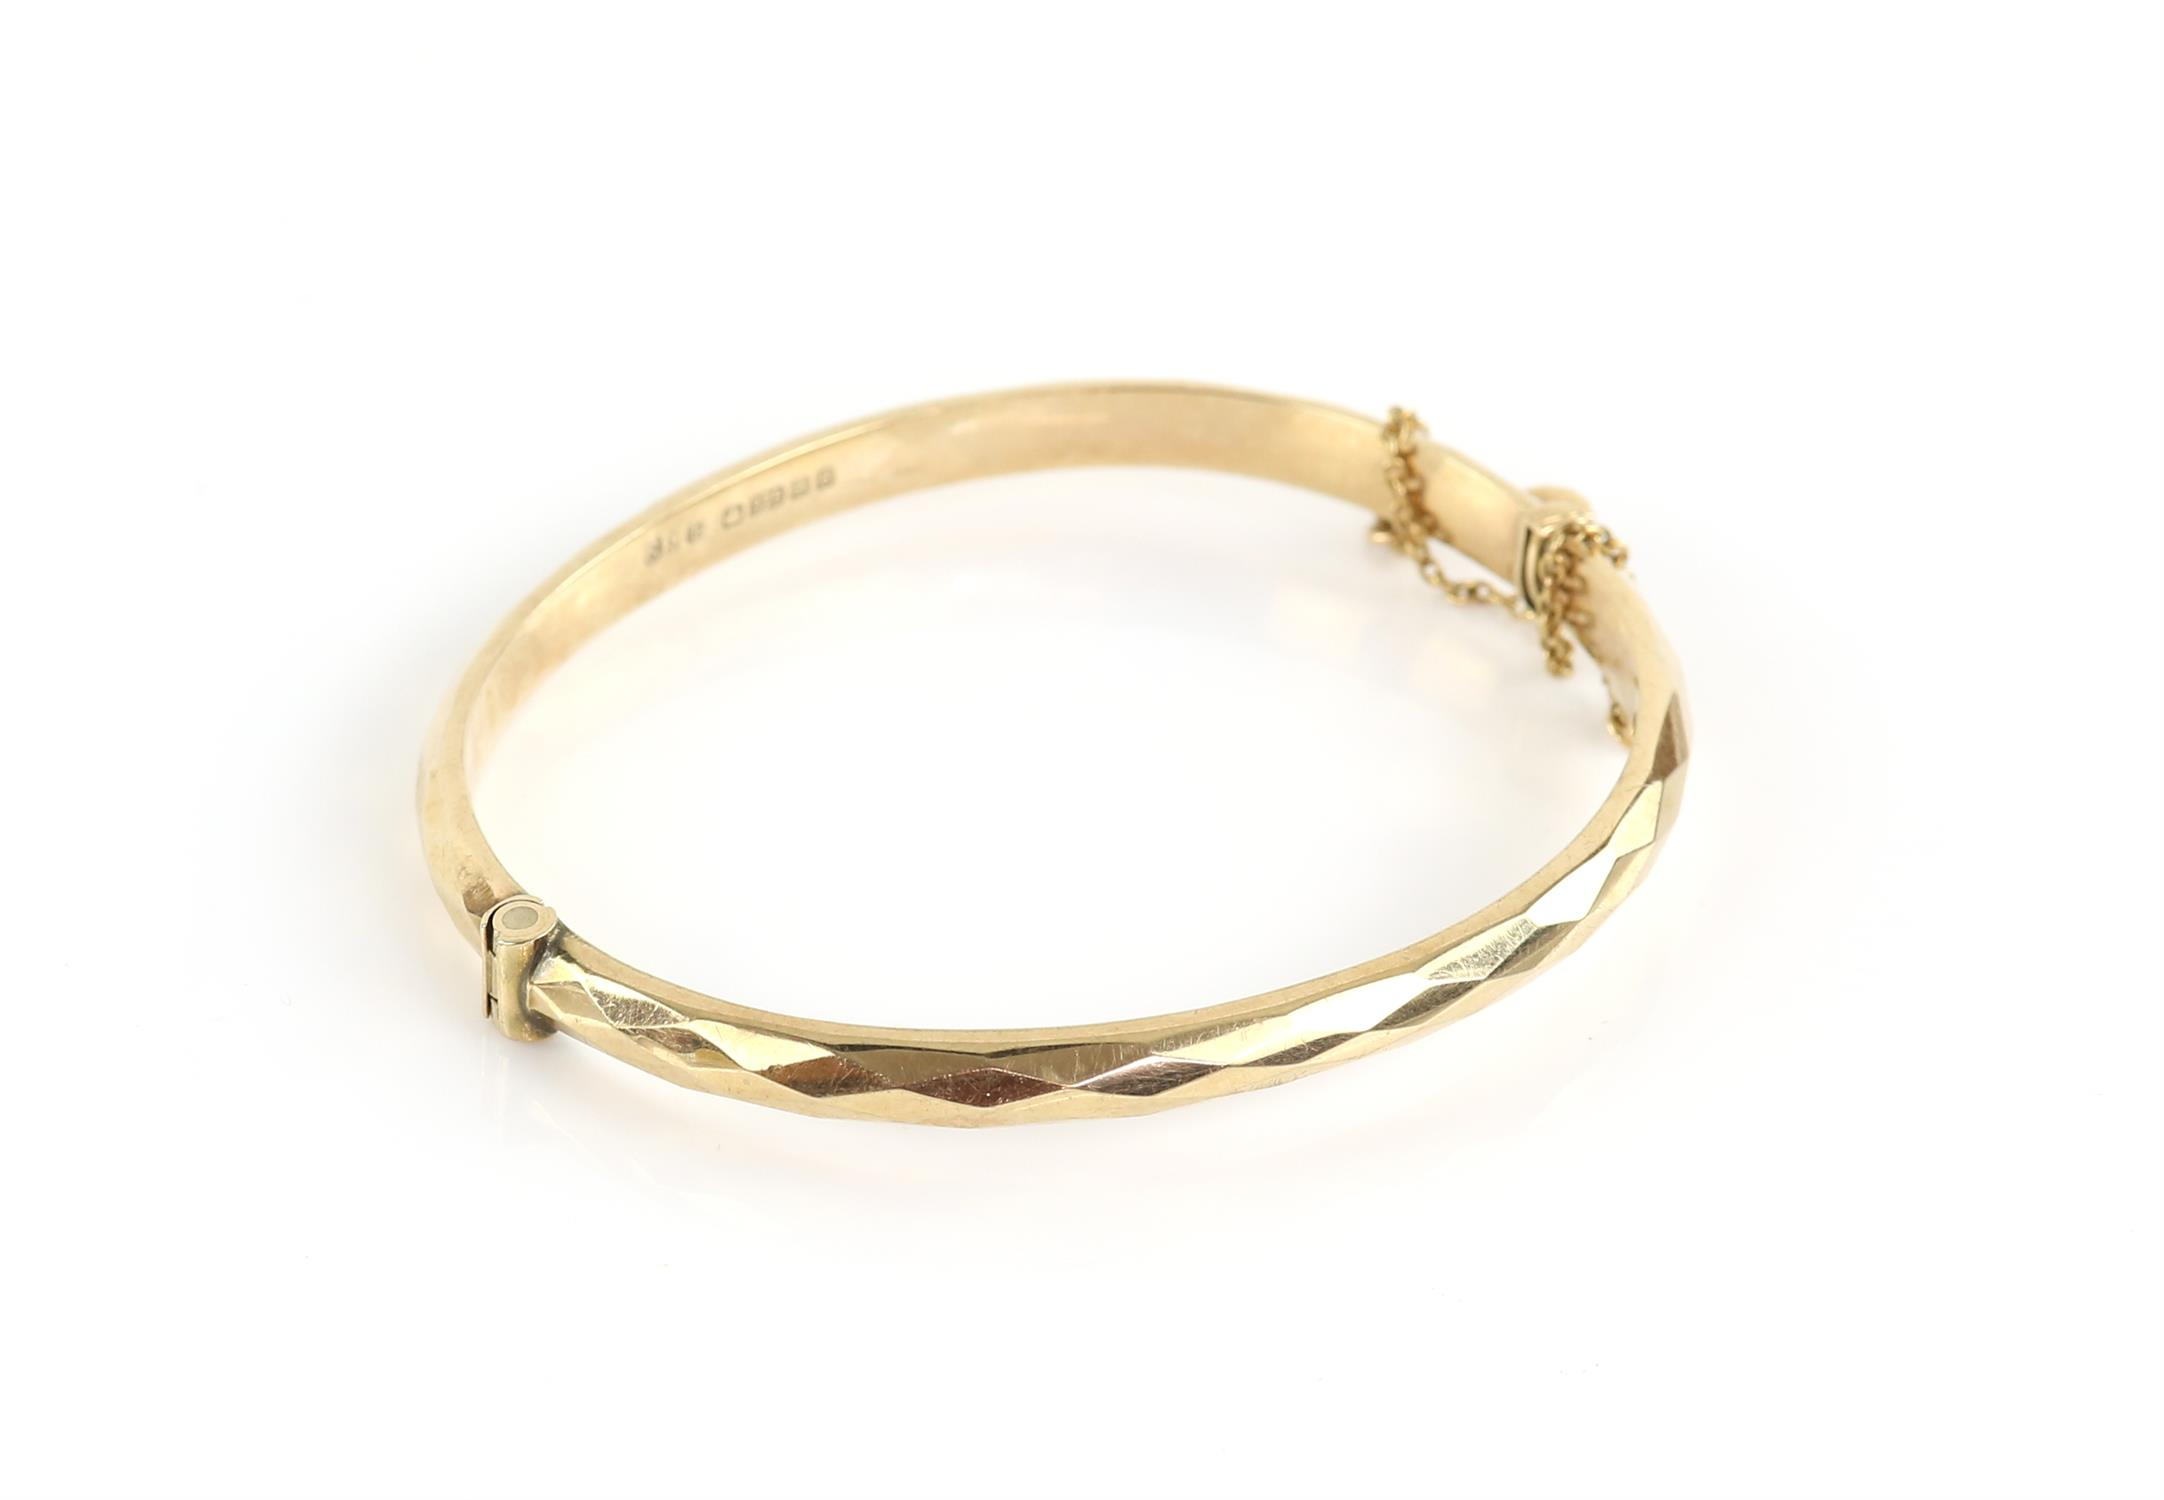 Vintage hinged bangle, diamond cut design to the outer edge, mounted in 9 ct gold,